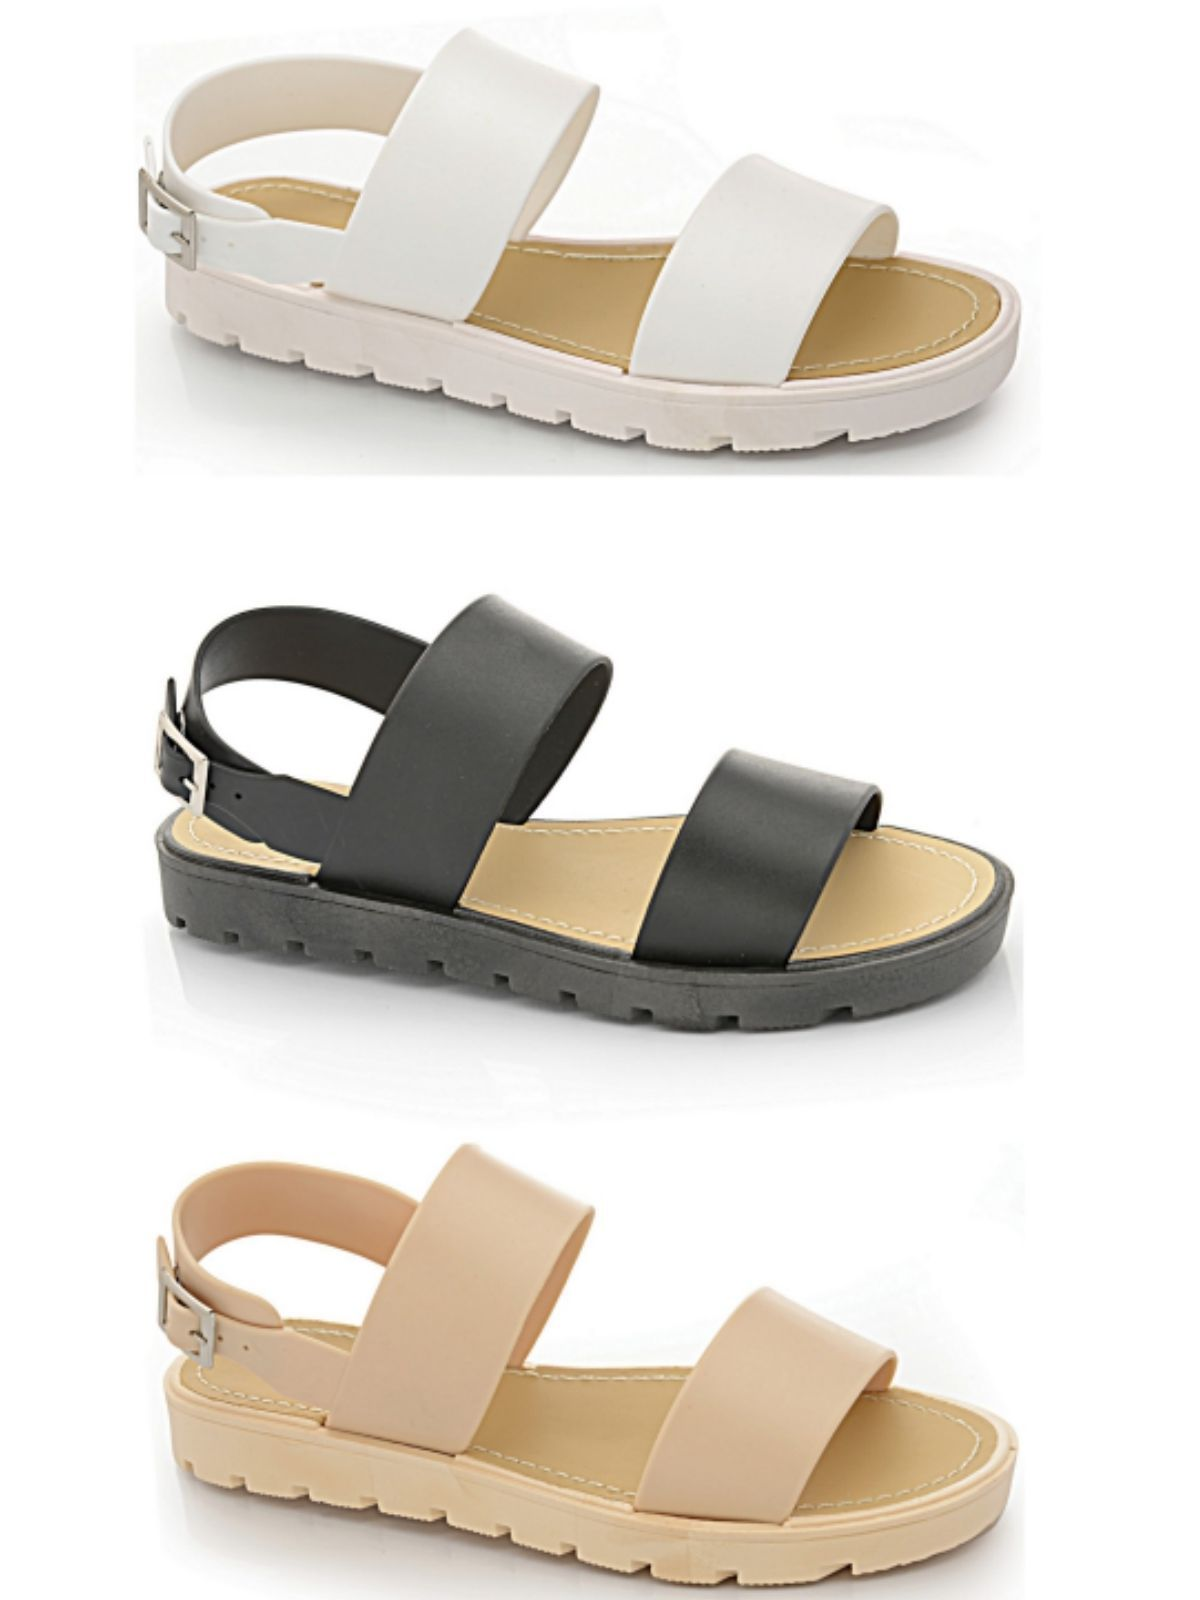 10c767857 Ladies Girls Peep Toe Flat Strappy Jelly Fashion Gladiator Holiday Beach  Sandal